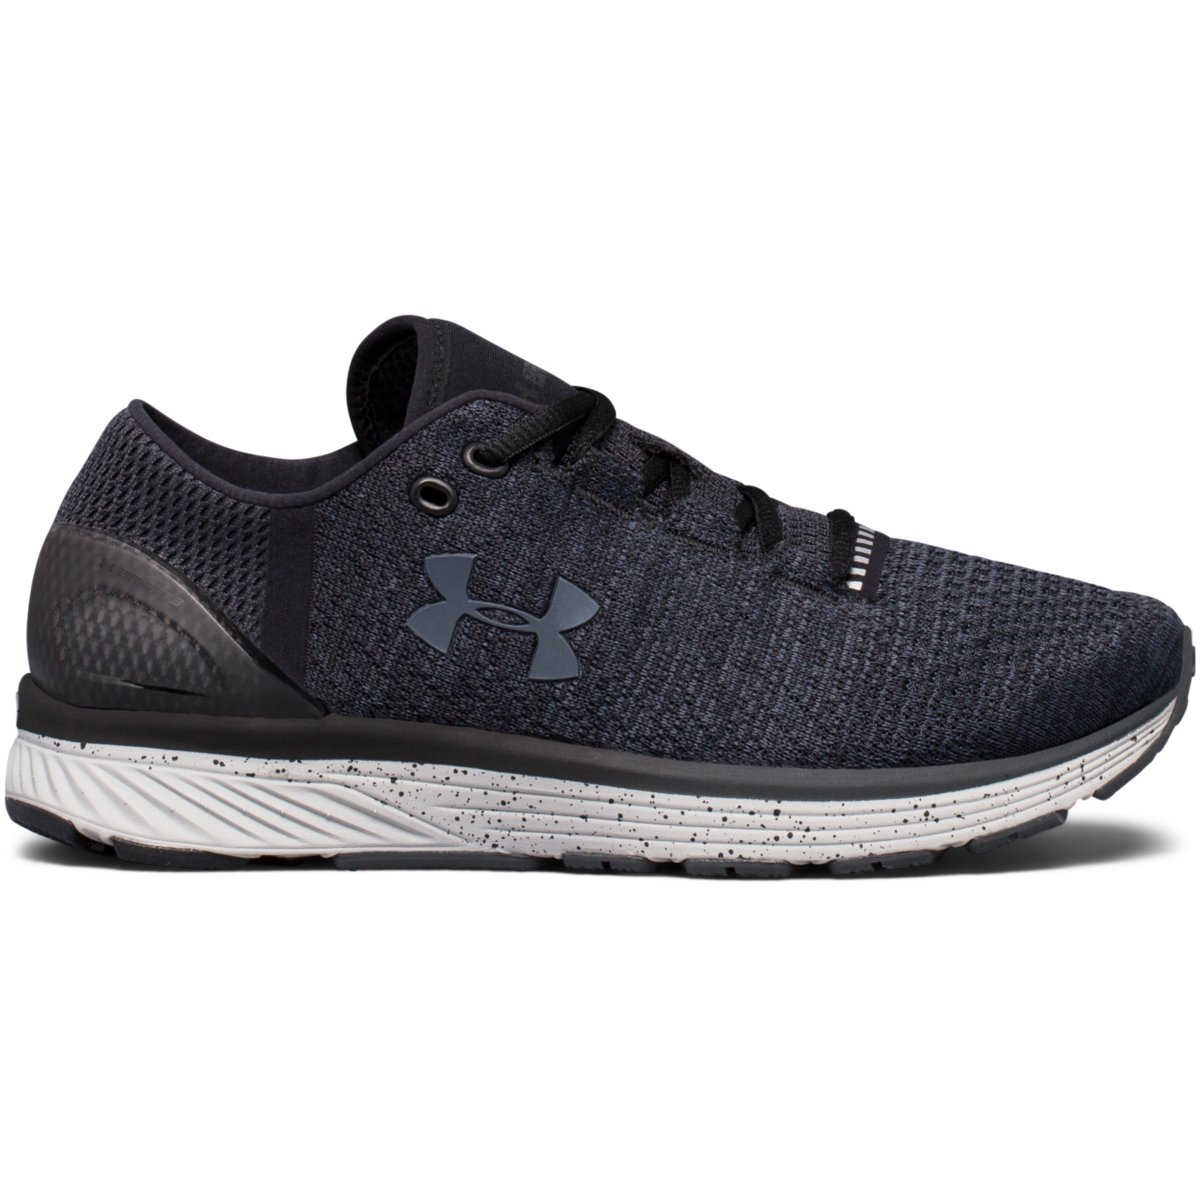 Women's Charged Under Armour Charged Women's Bandit 3 Running Shoe 35c9a8